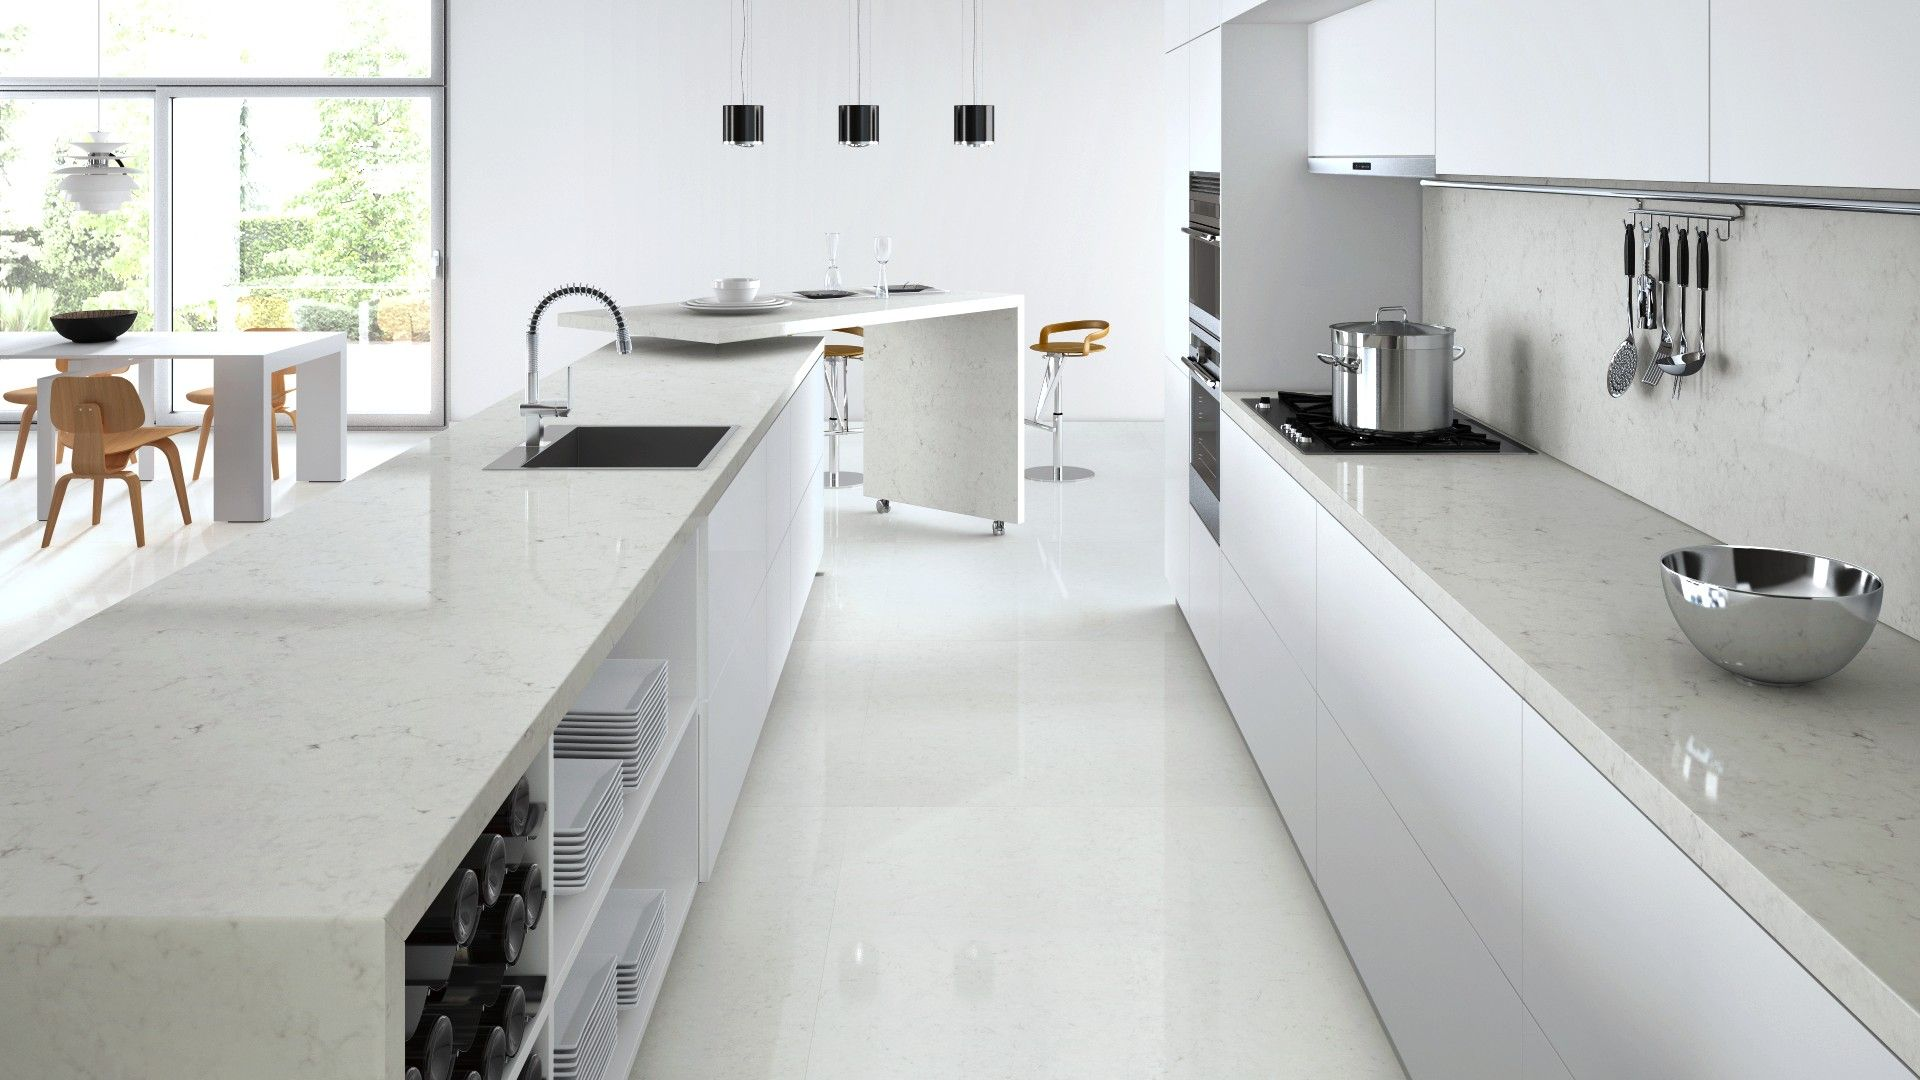 Grey Benchtop Kitchen Caesarstone Visualizer London Grey Benchtop And Splashback